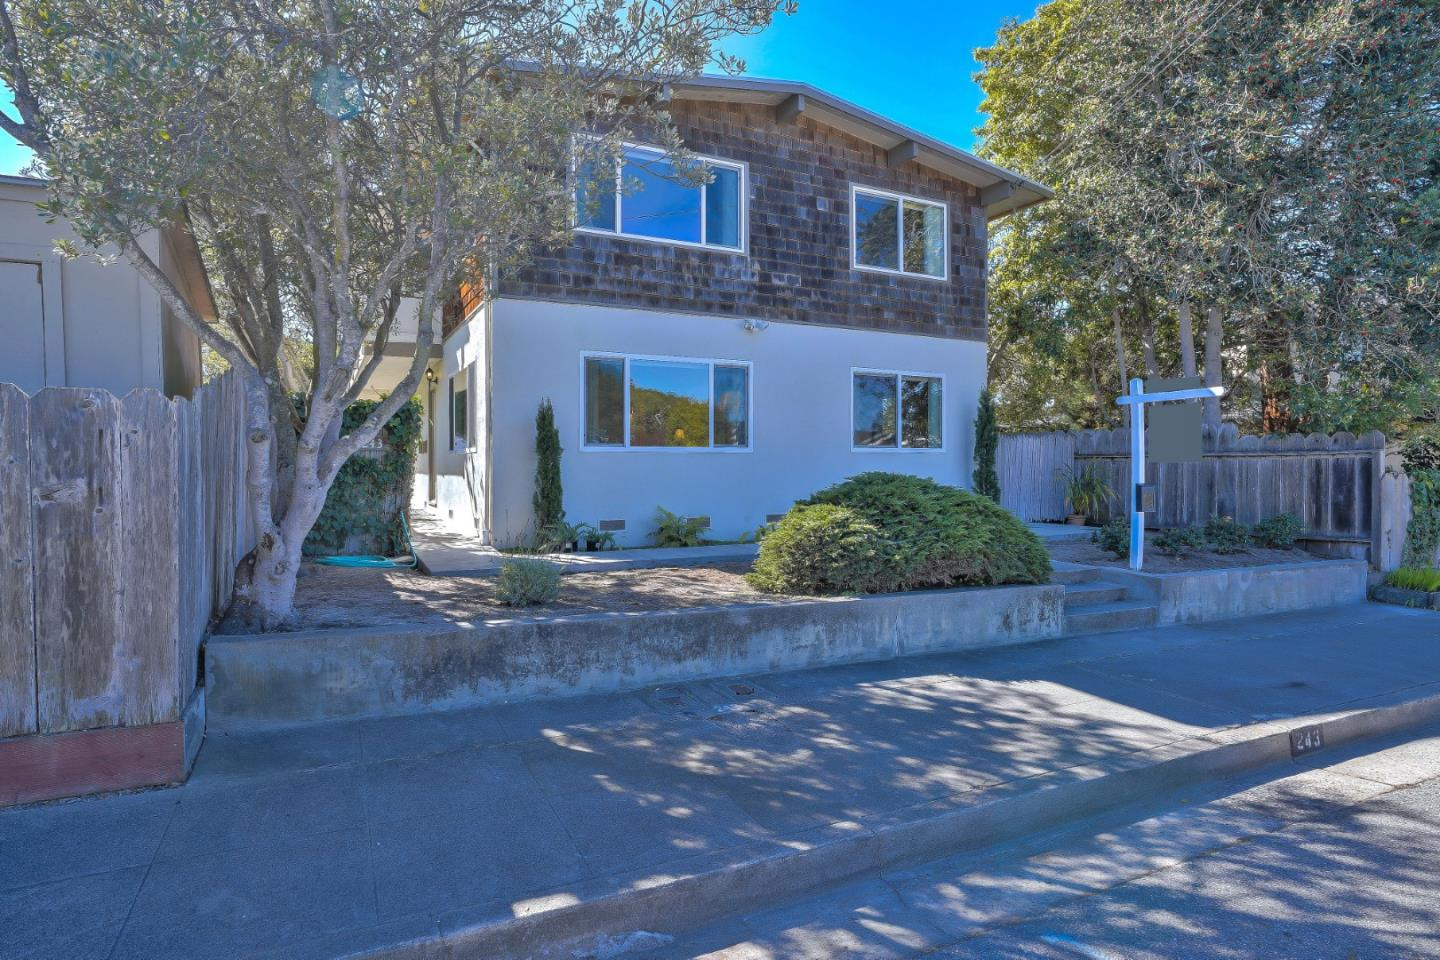 Property for sale at 243 Spruce AVE, Pacific Grove,  CA 93950